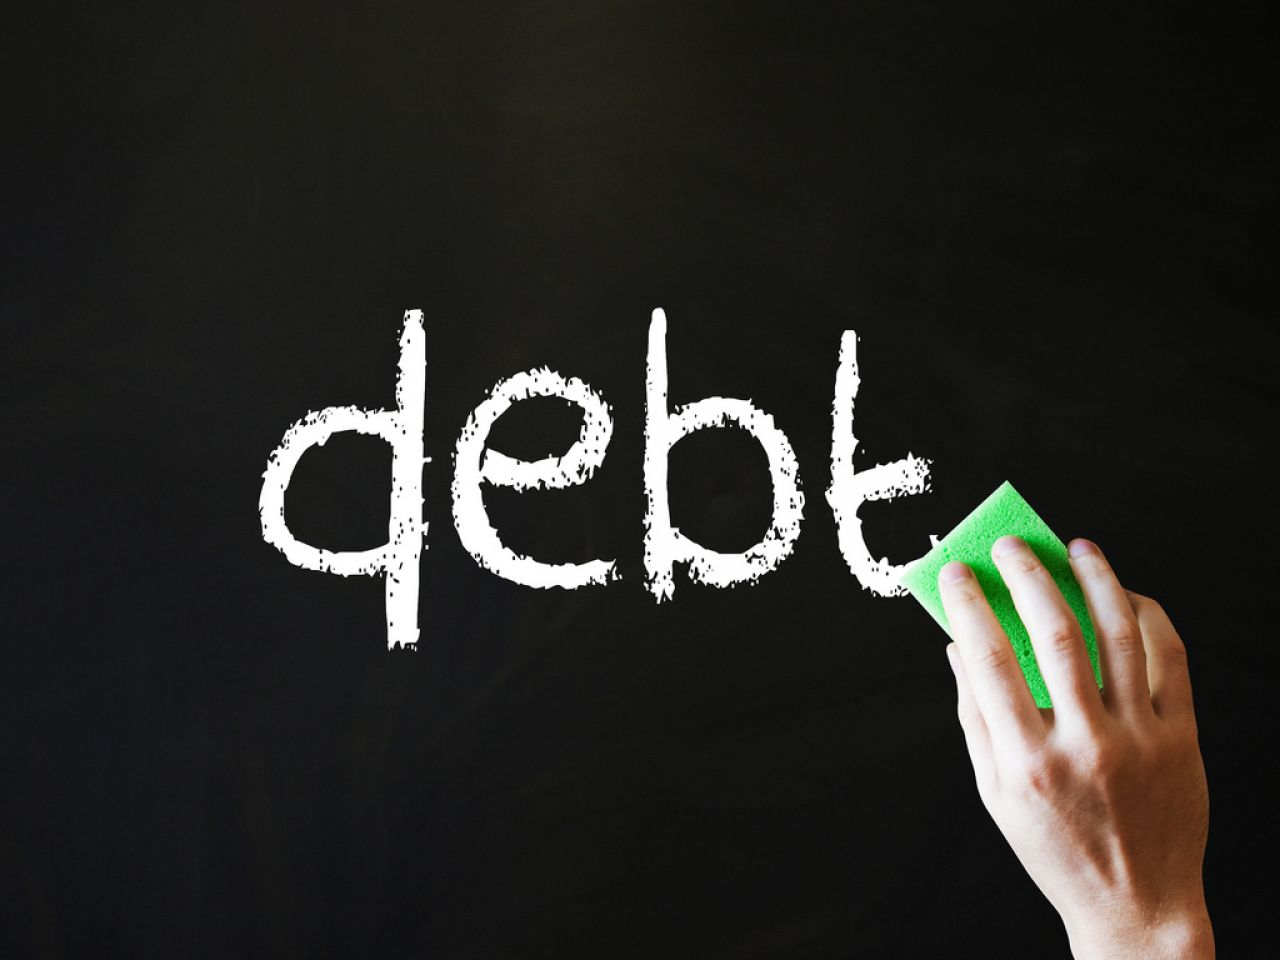 the local government debt in china Chinese president xi jinping has been urging local governments to cut their debt  levels to reduce financial risk in the world's second-biggest.